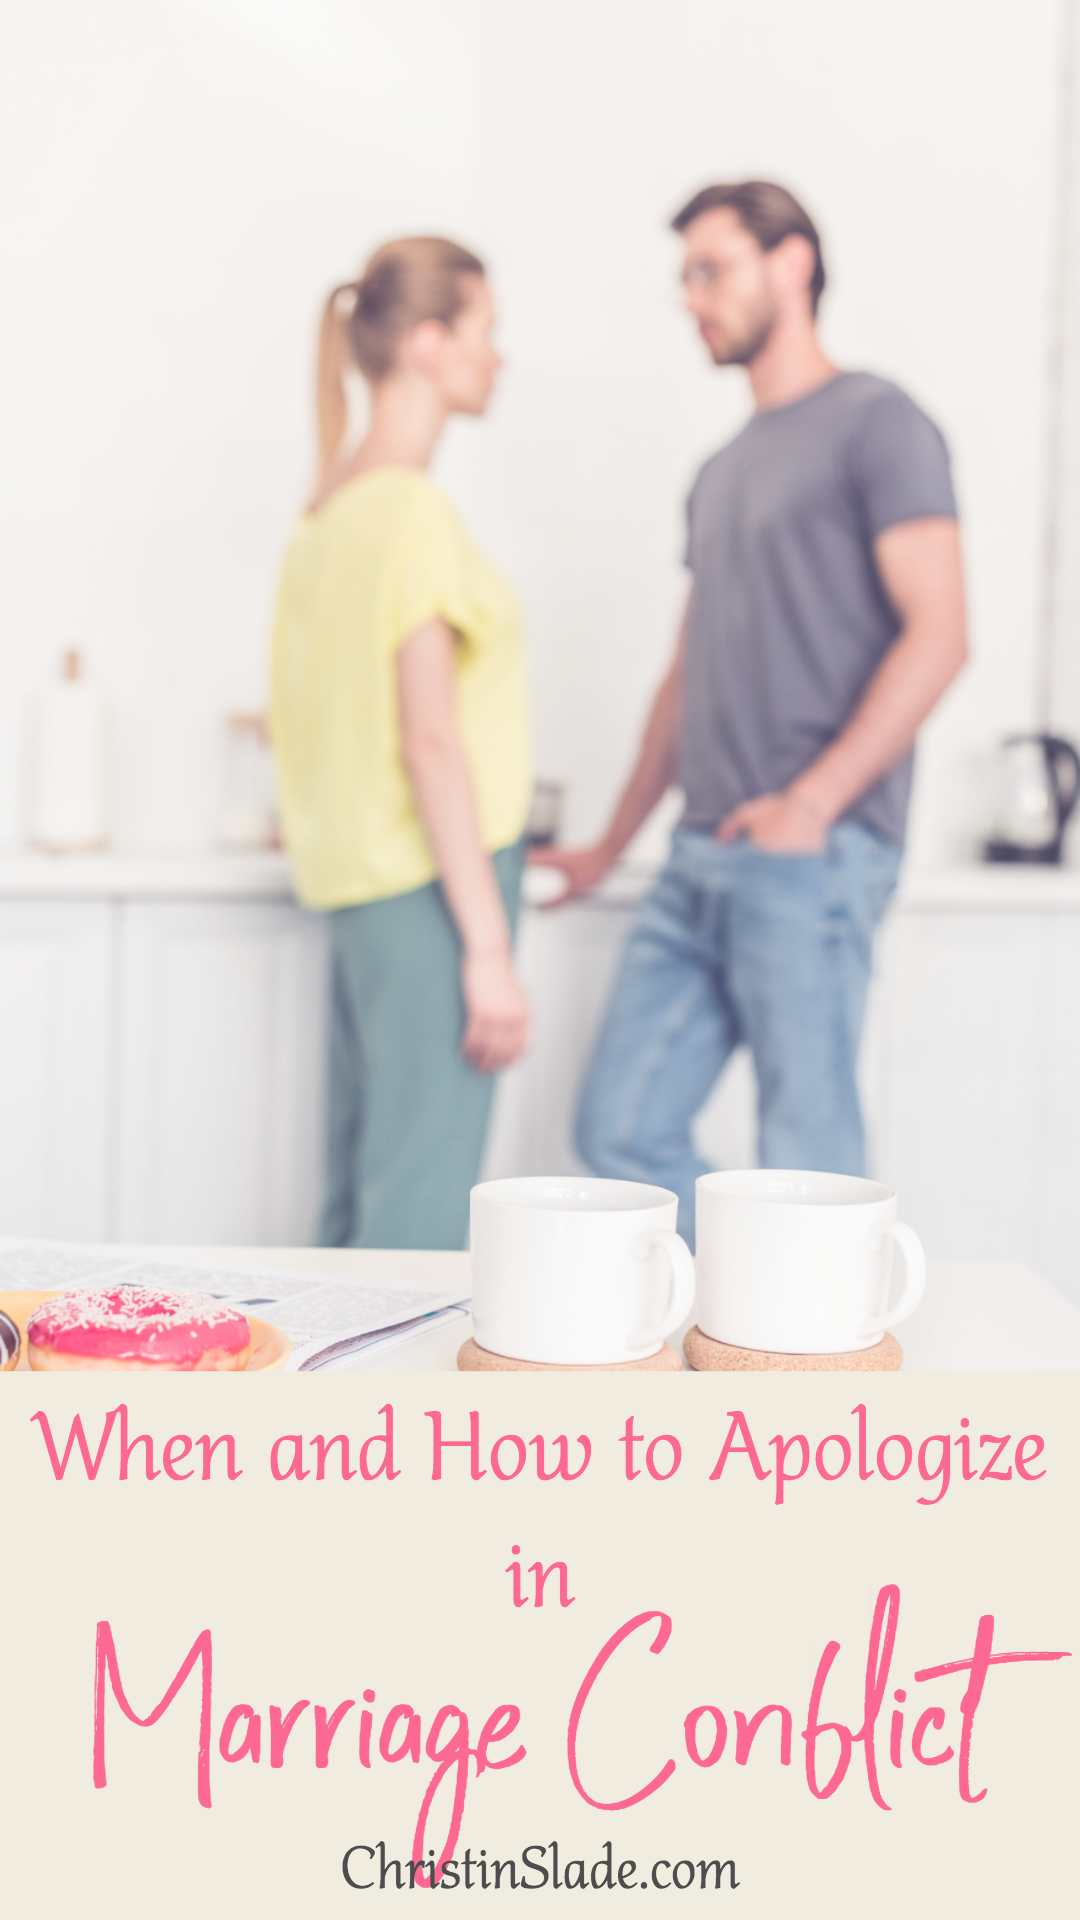 When we apologize, it helps diffuse the heat. It allows for the conflict to be addressed, if necessary, without either party being hot-headed or defensive.